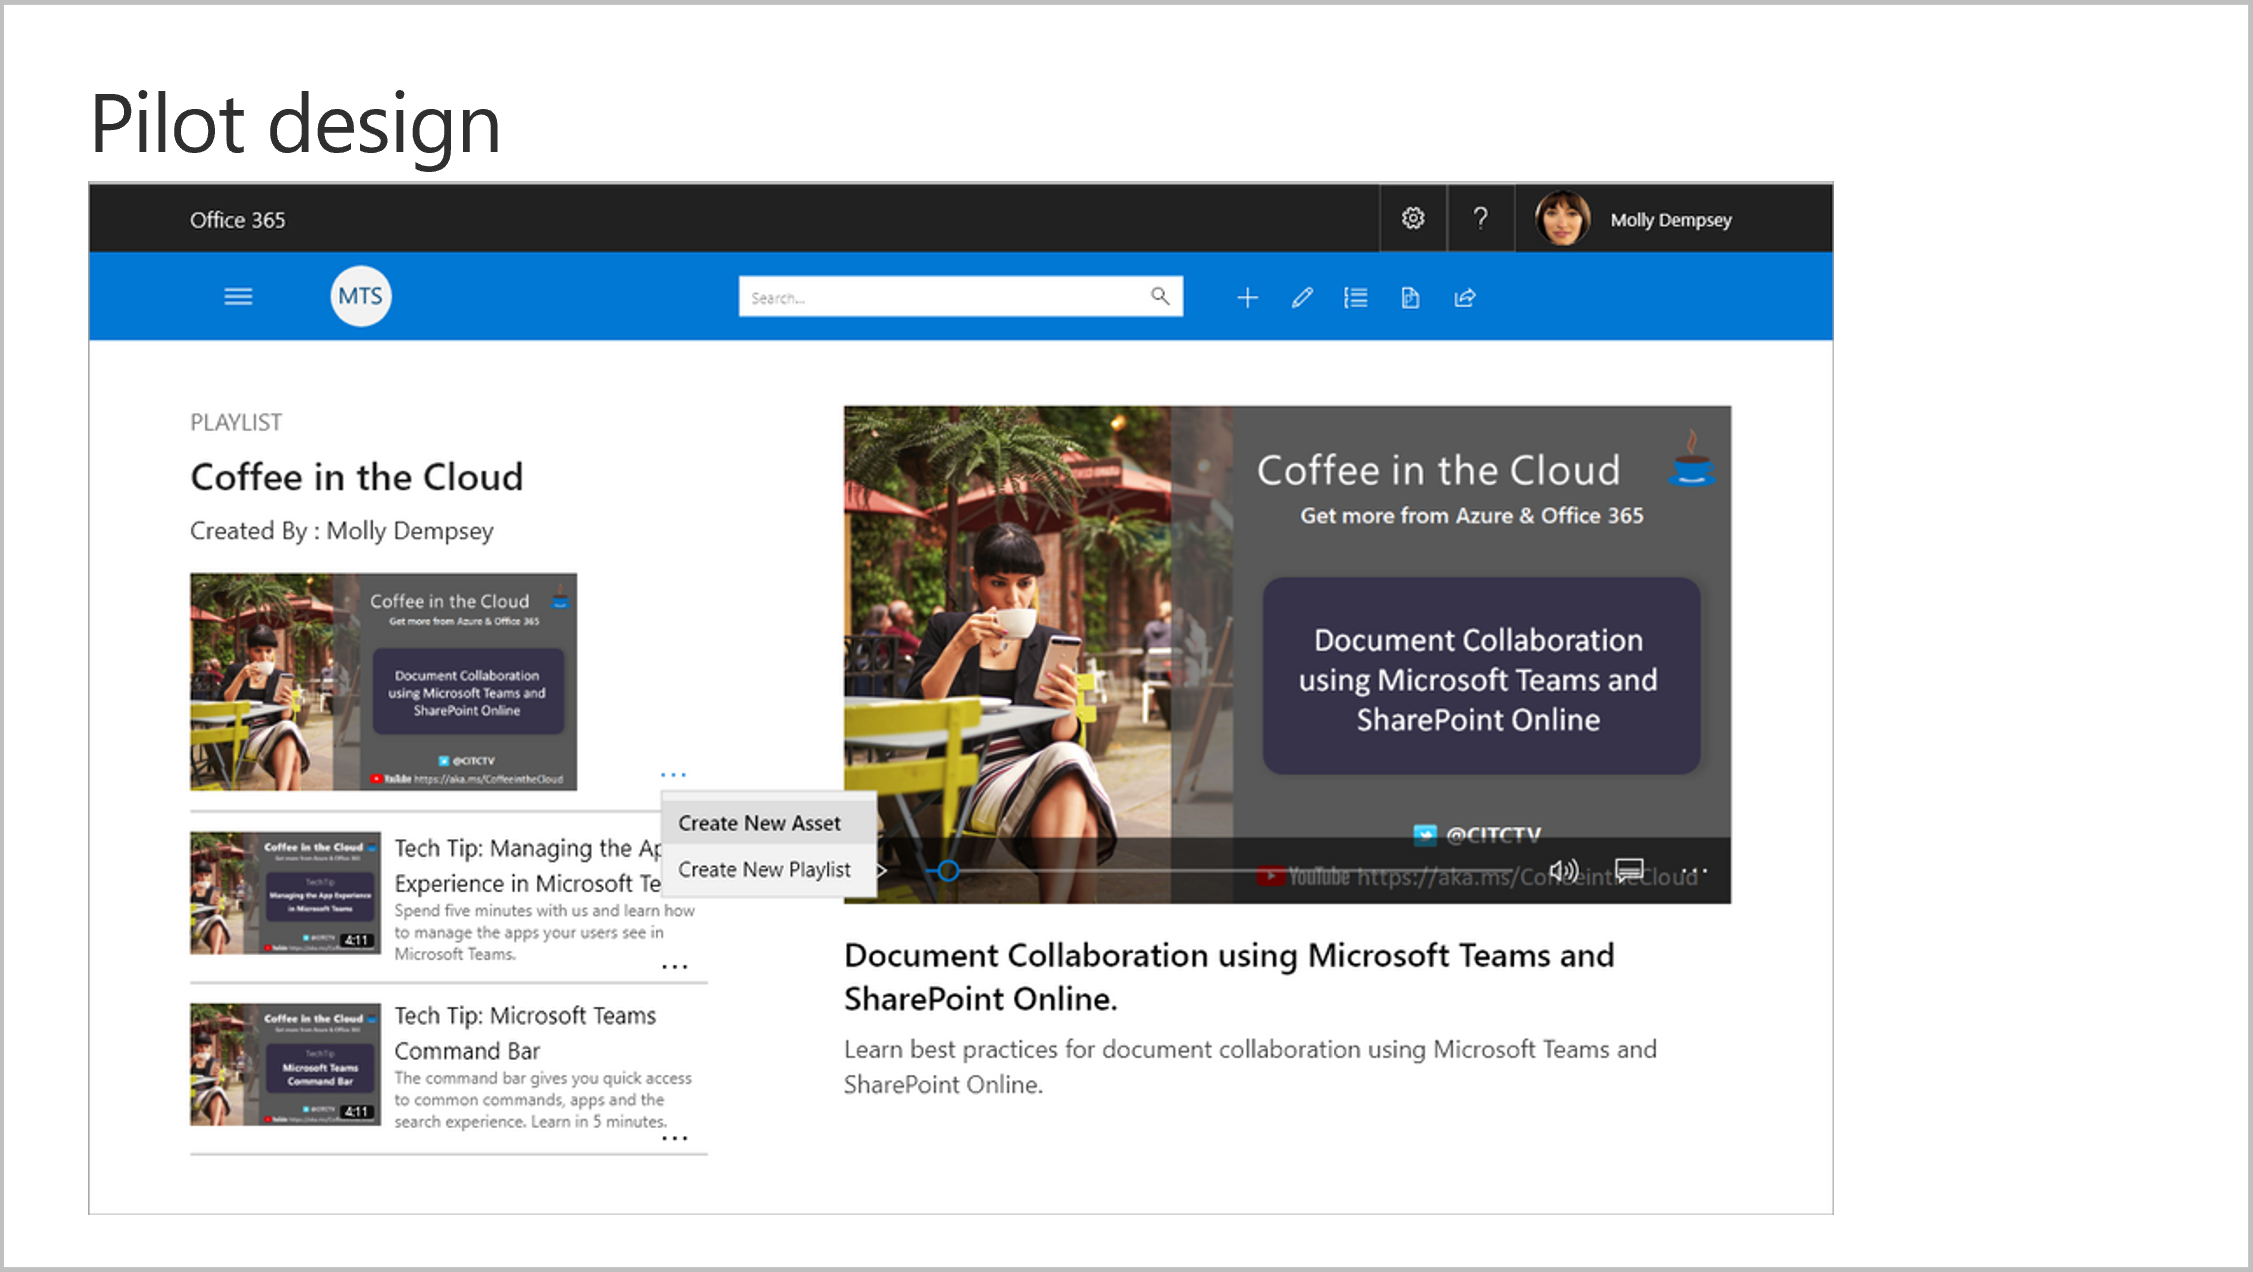 Image of the pilot design experience for Microsoft Training Services